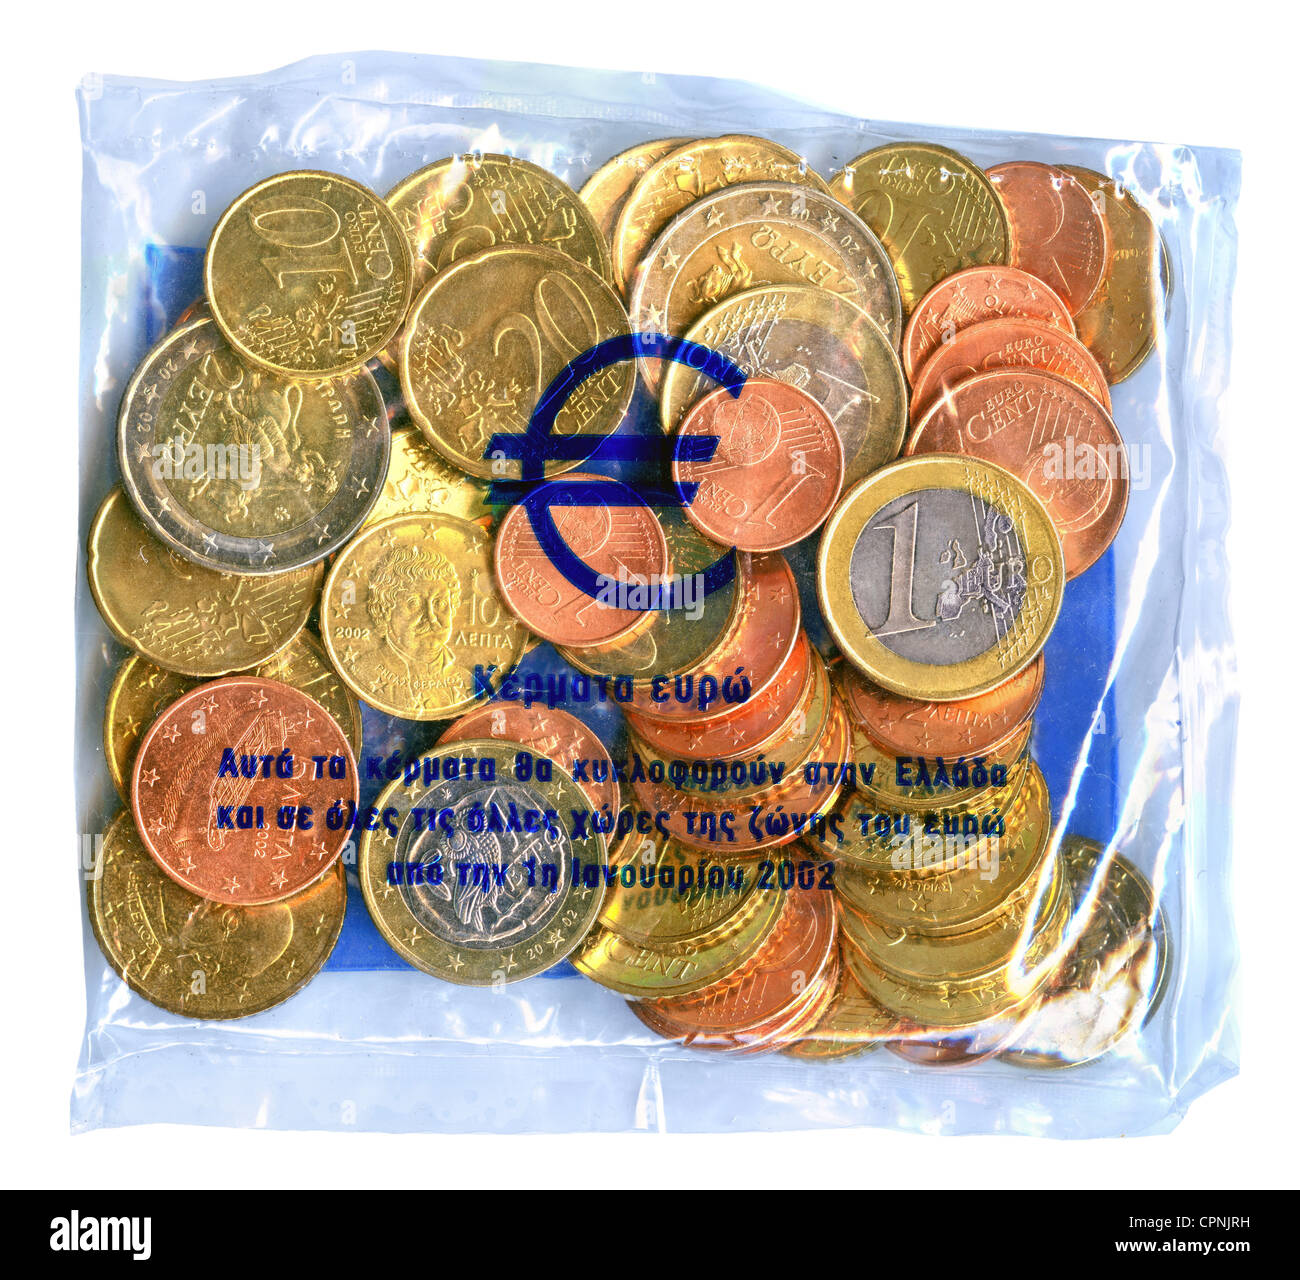 money / finances, coins, Greece, Euro Starterkit Greece, starter kit launched by the banks in the December 2001, - Stock Image